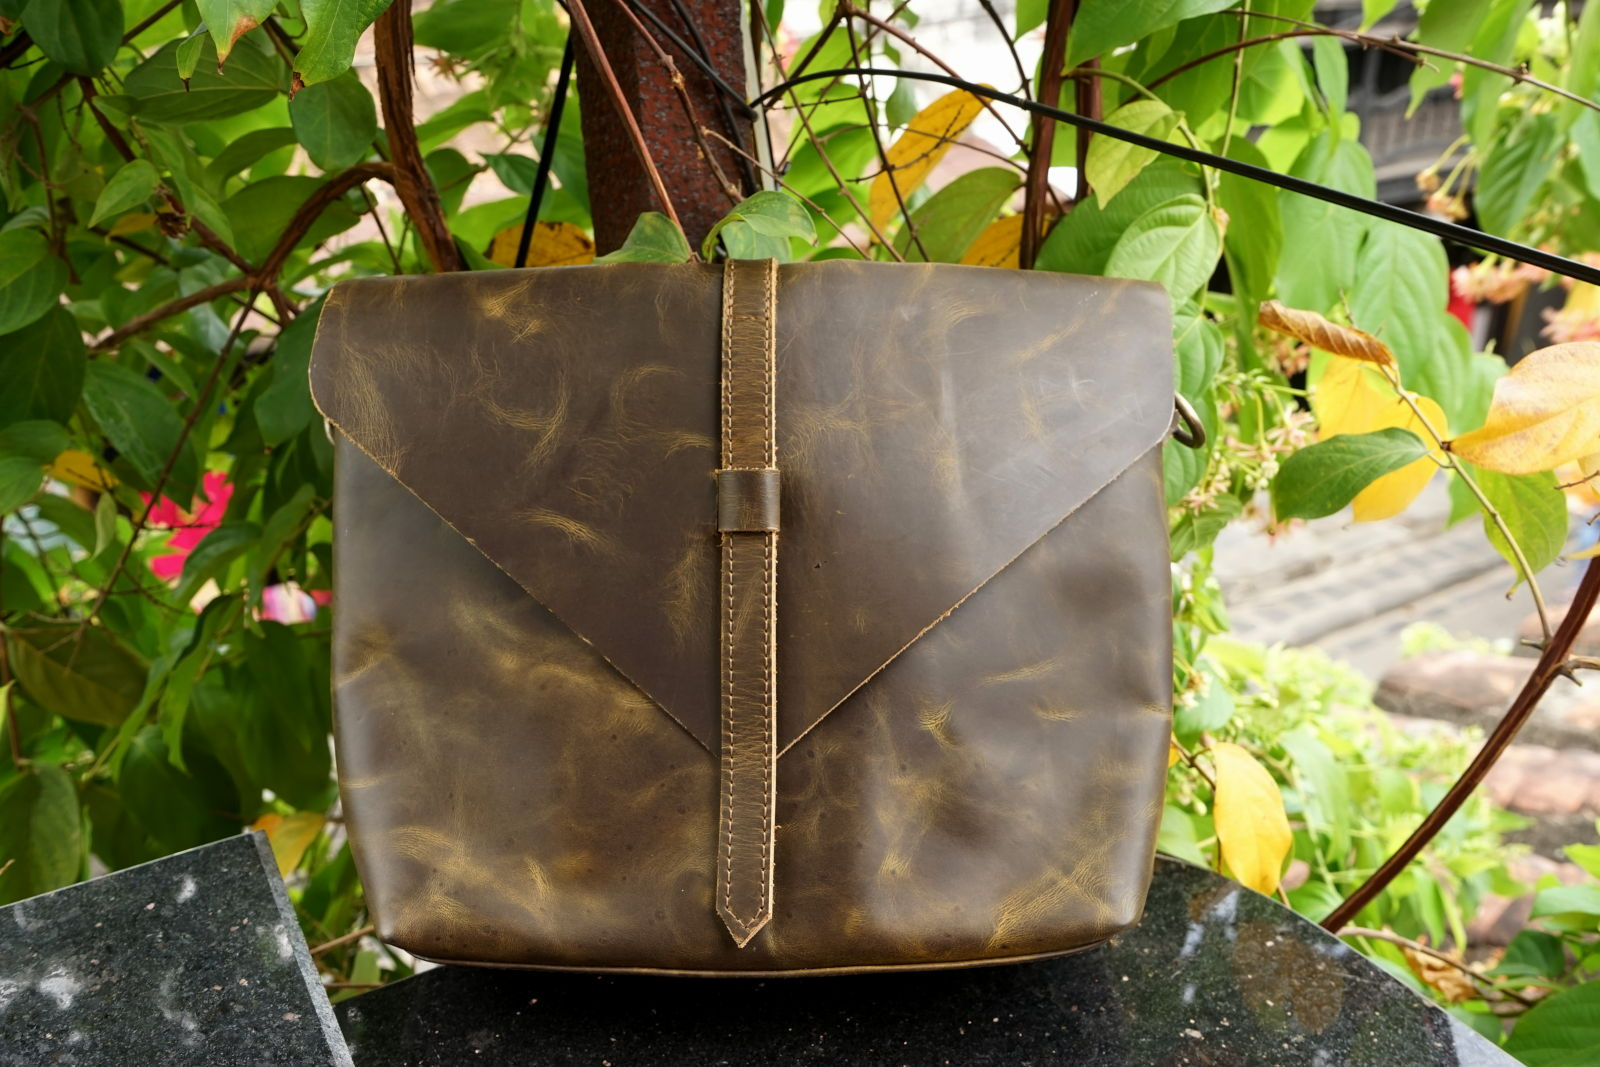 Hoi An Real Leather - Da Bao Real Leather: Leather Handbag closing with a strap. Marbled green.